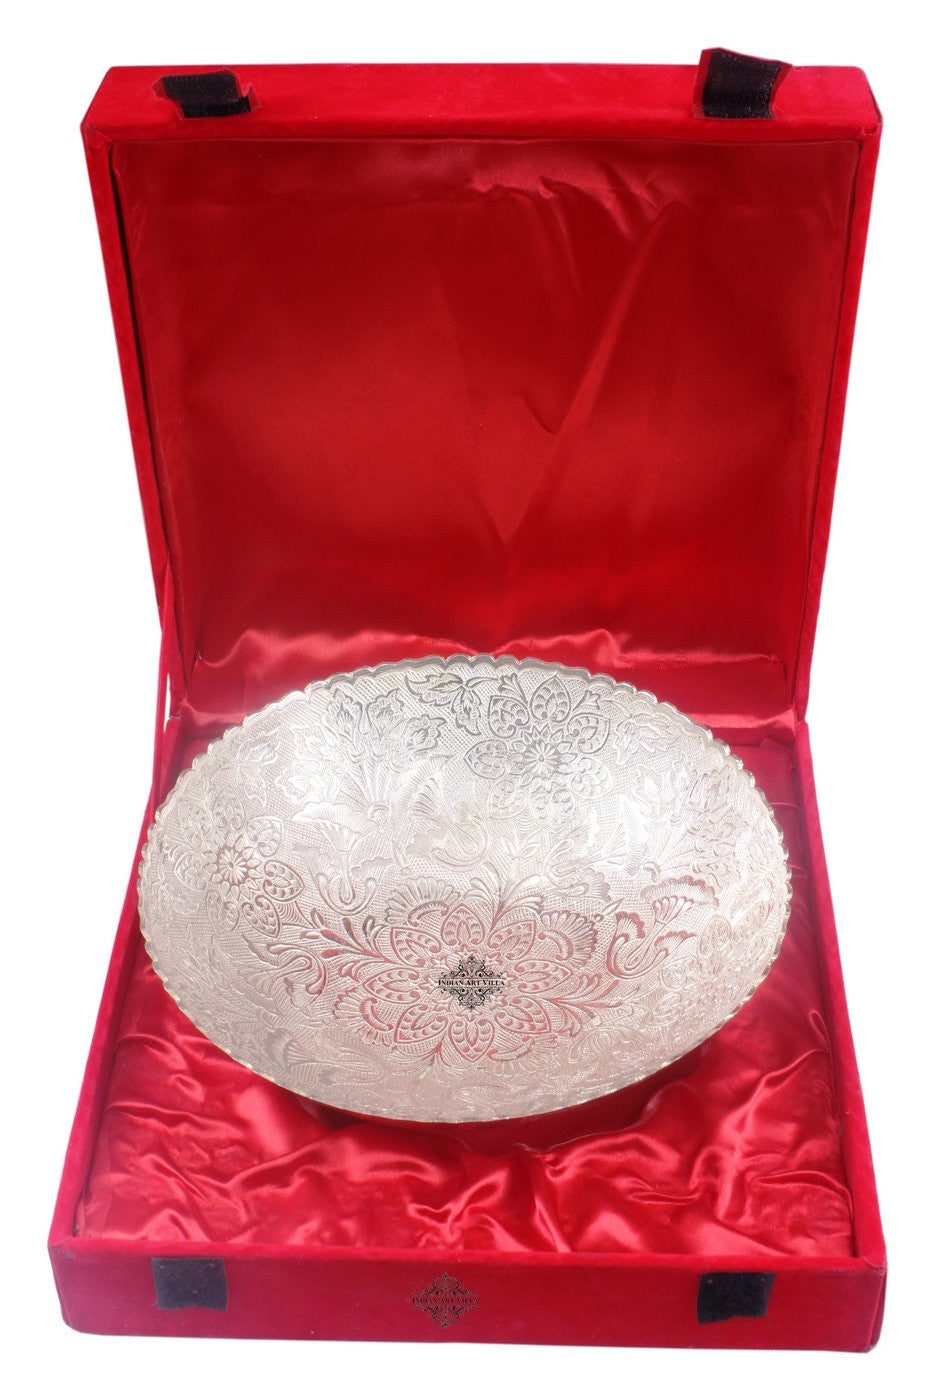 Silver Plated Handmade Floral Design Bowl 1750 ML